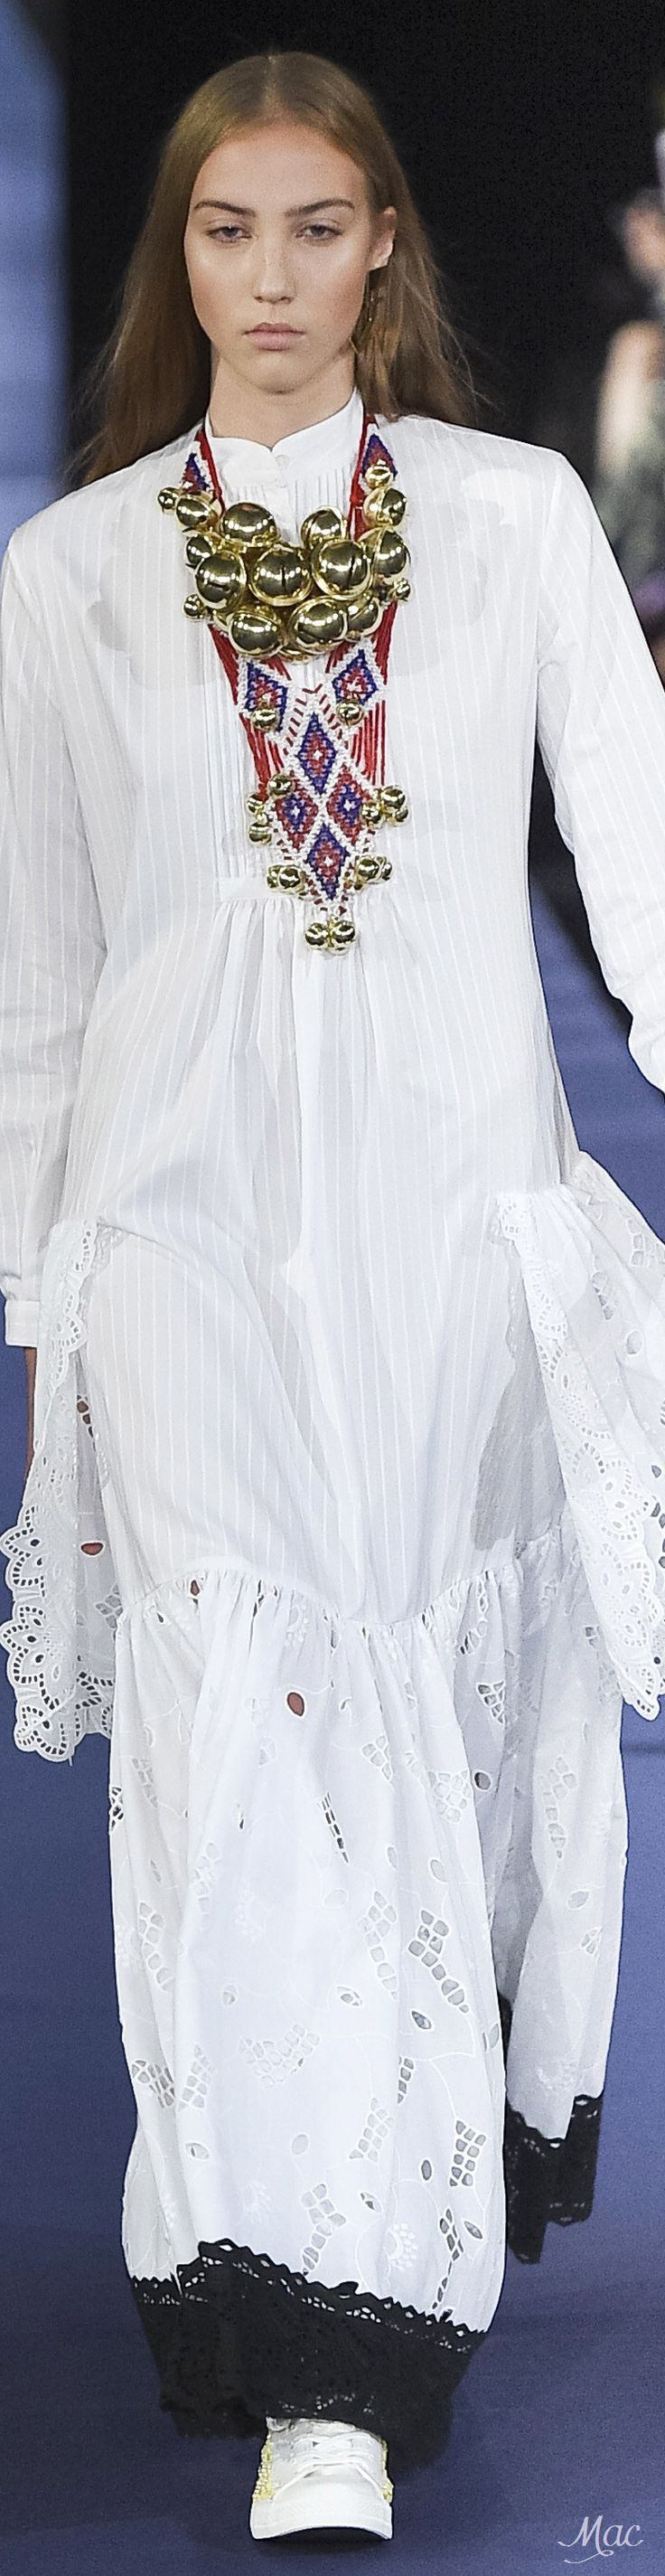 Spring 2017 Ready-to-Wear Alexis Mabille